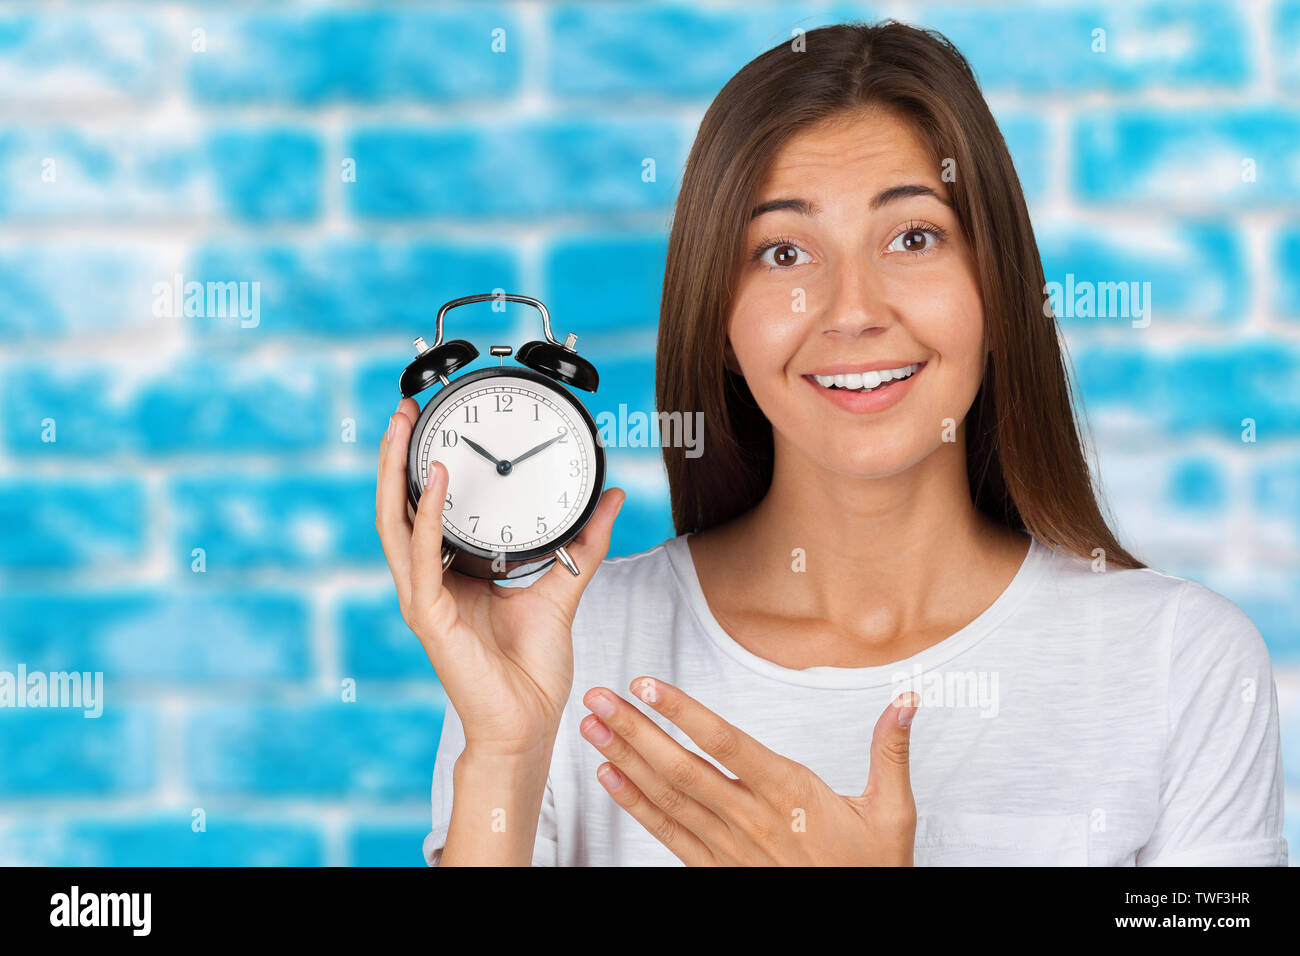 Smiling woman holding alarm watch - Stock Image